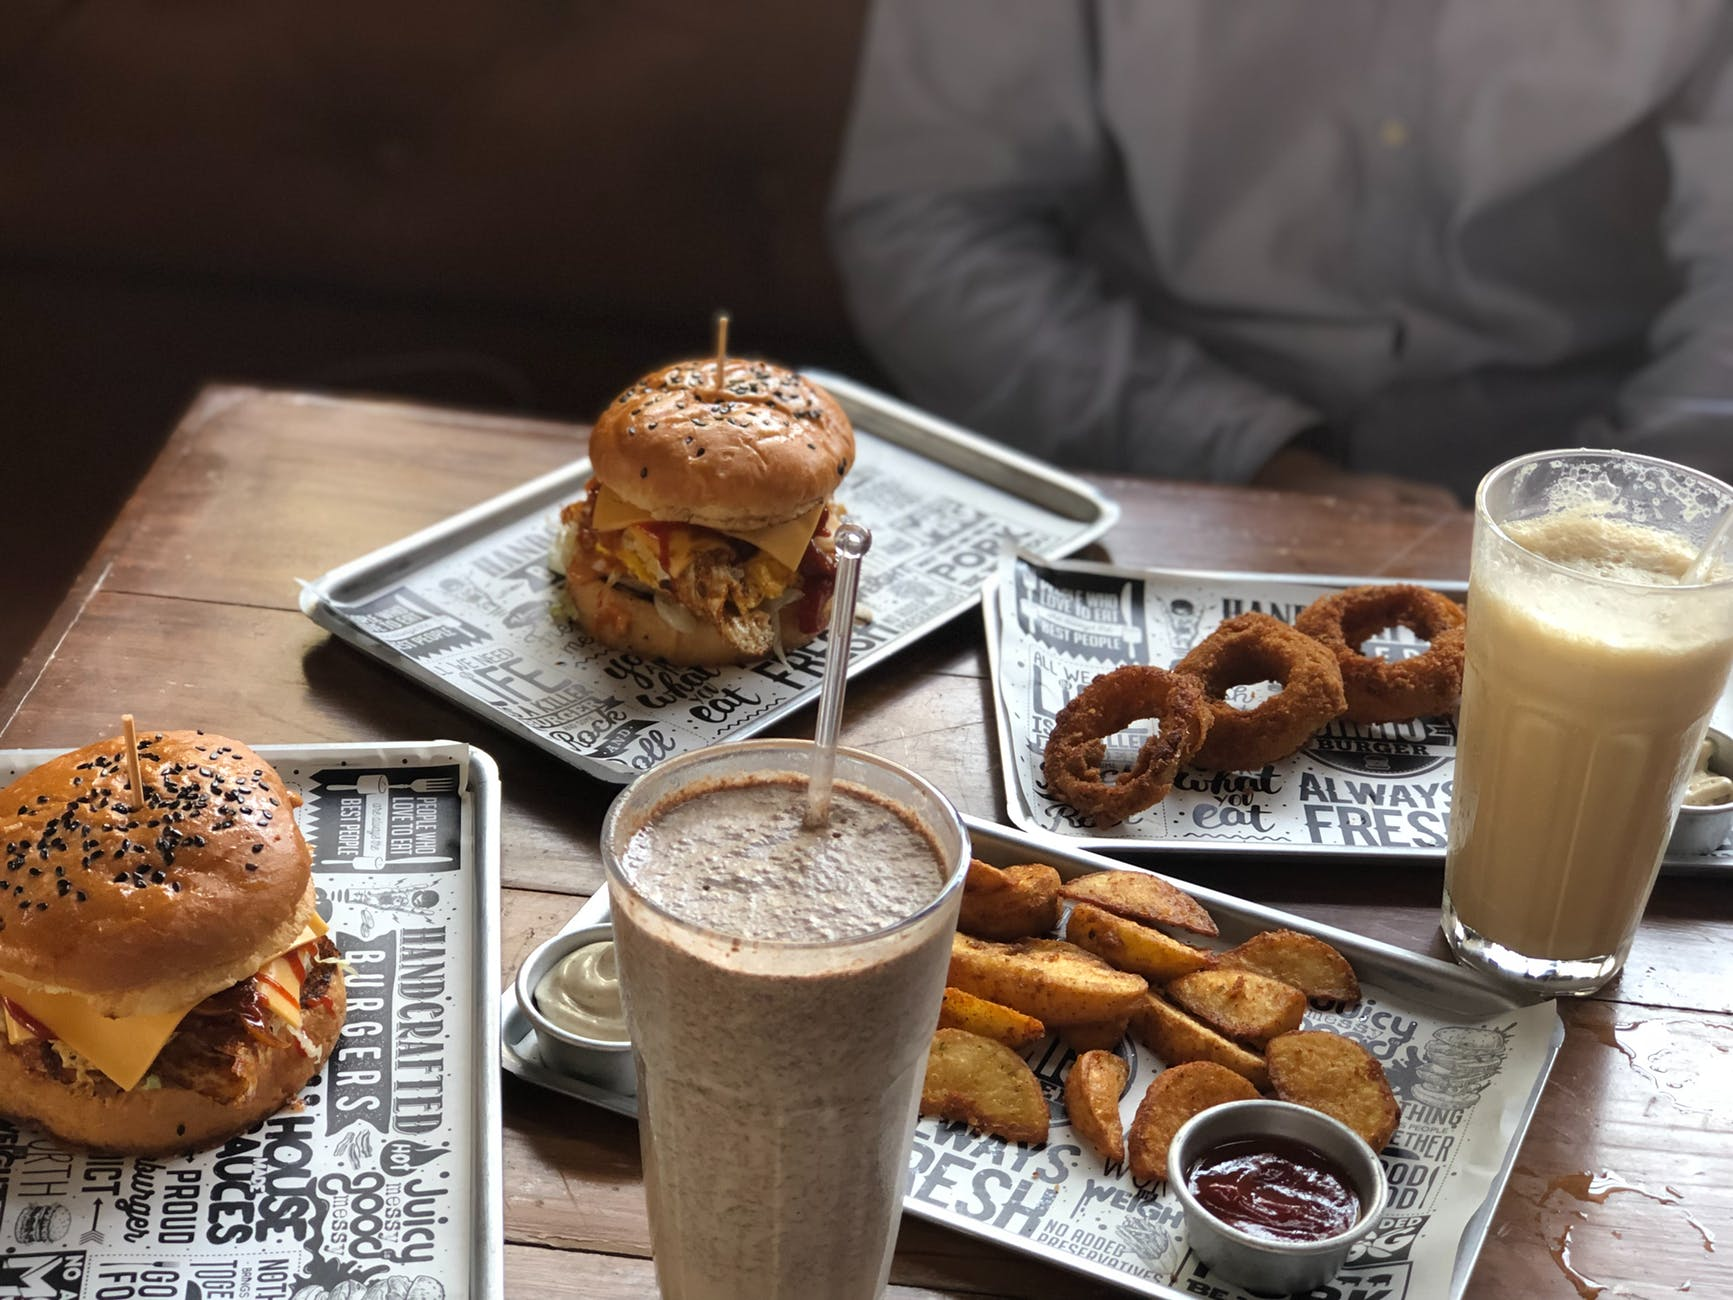 two milk shakes burgers fried onion rings and wedge potatoes on the table